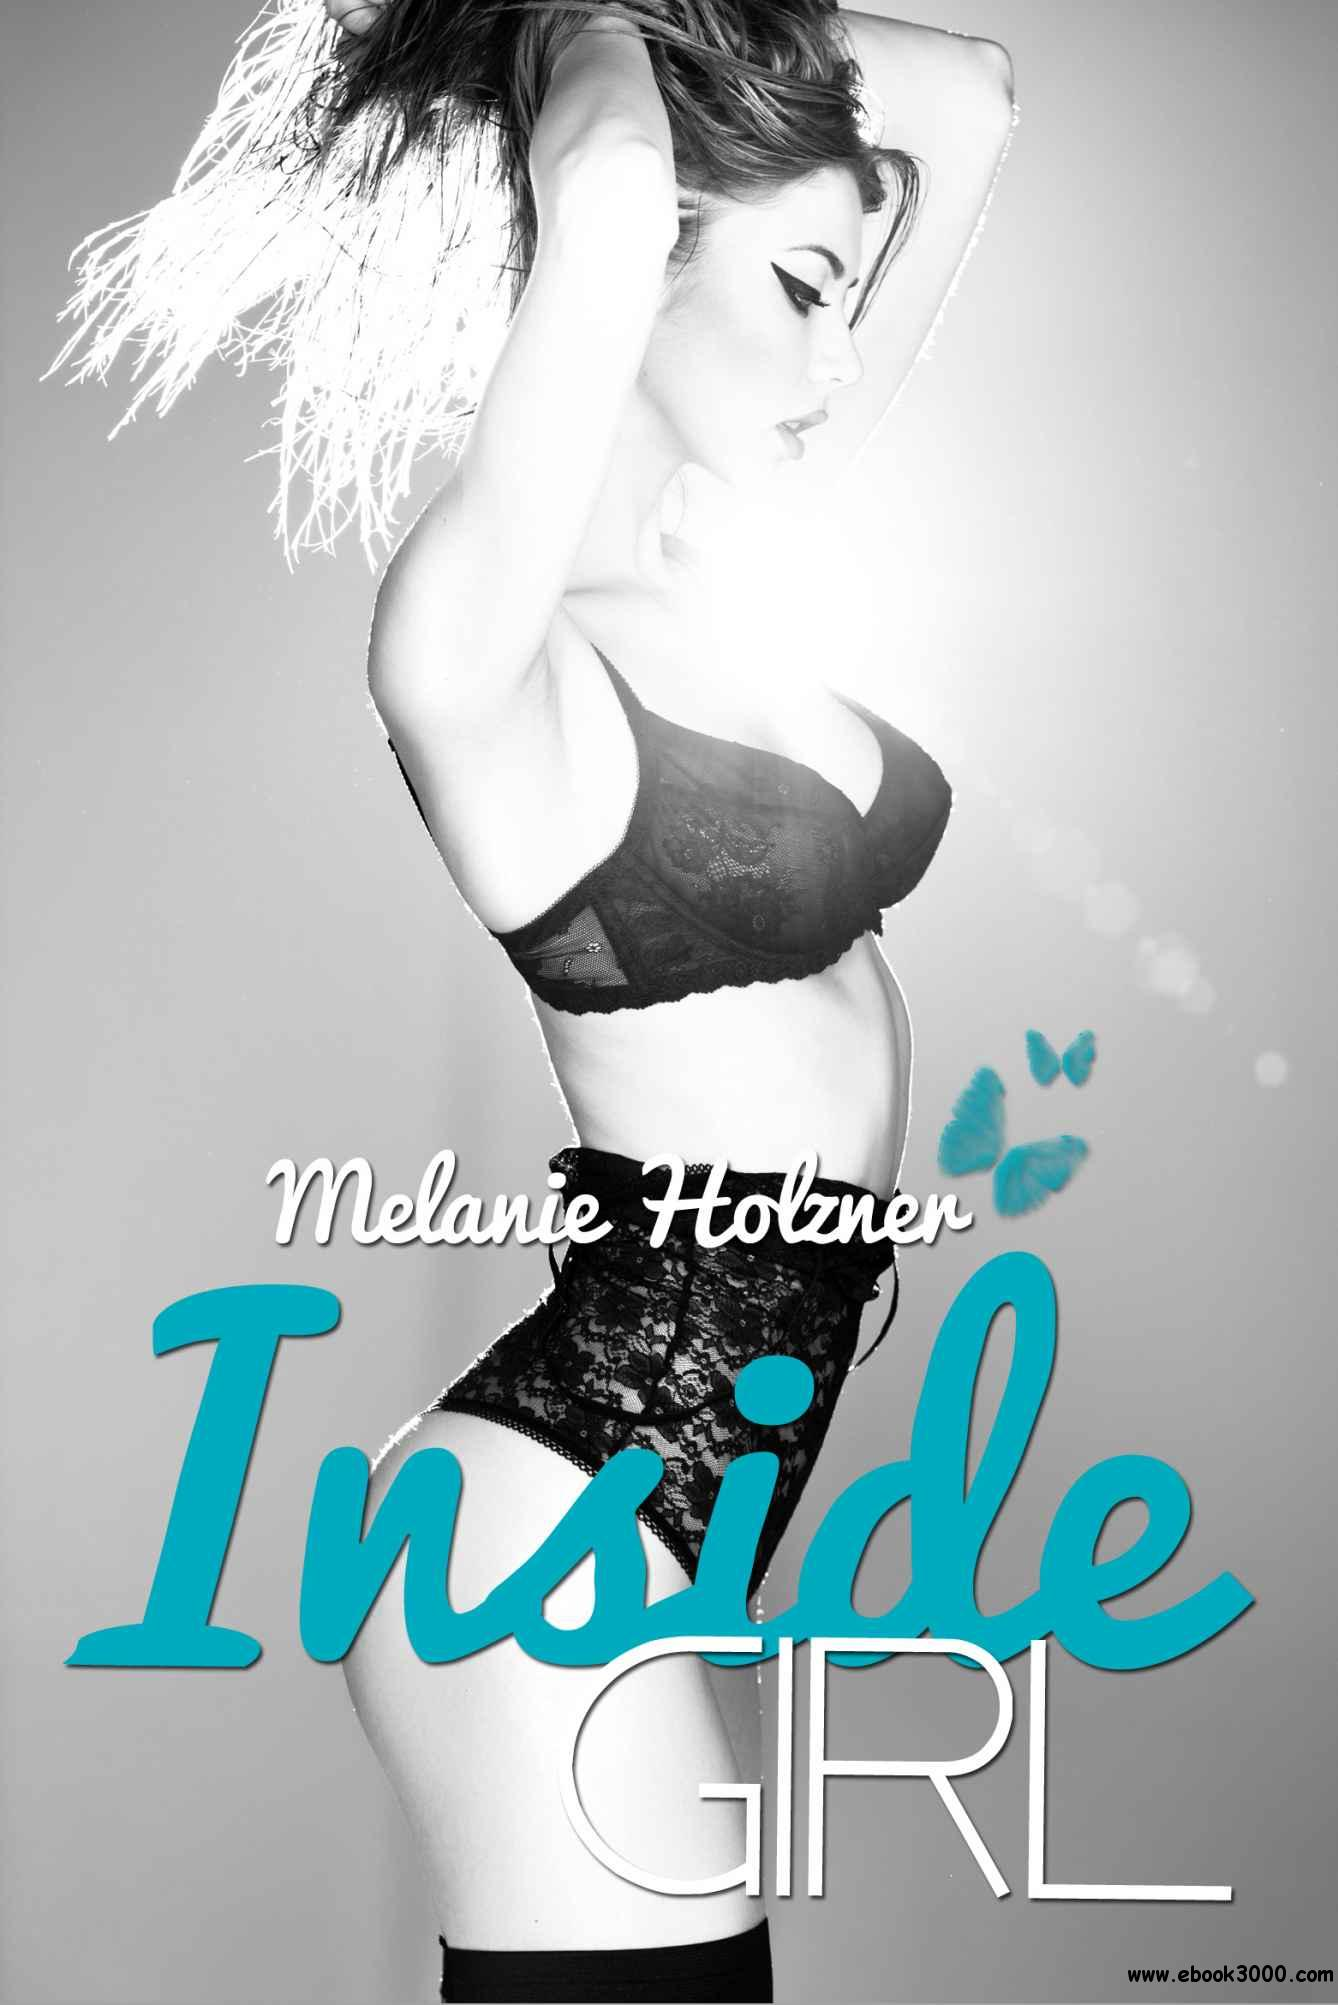 Holzner, Melanie - Inside Girl free download